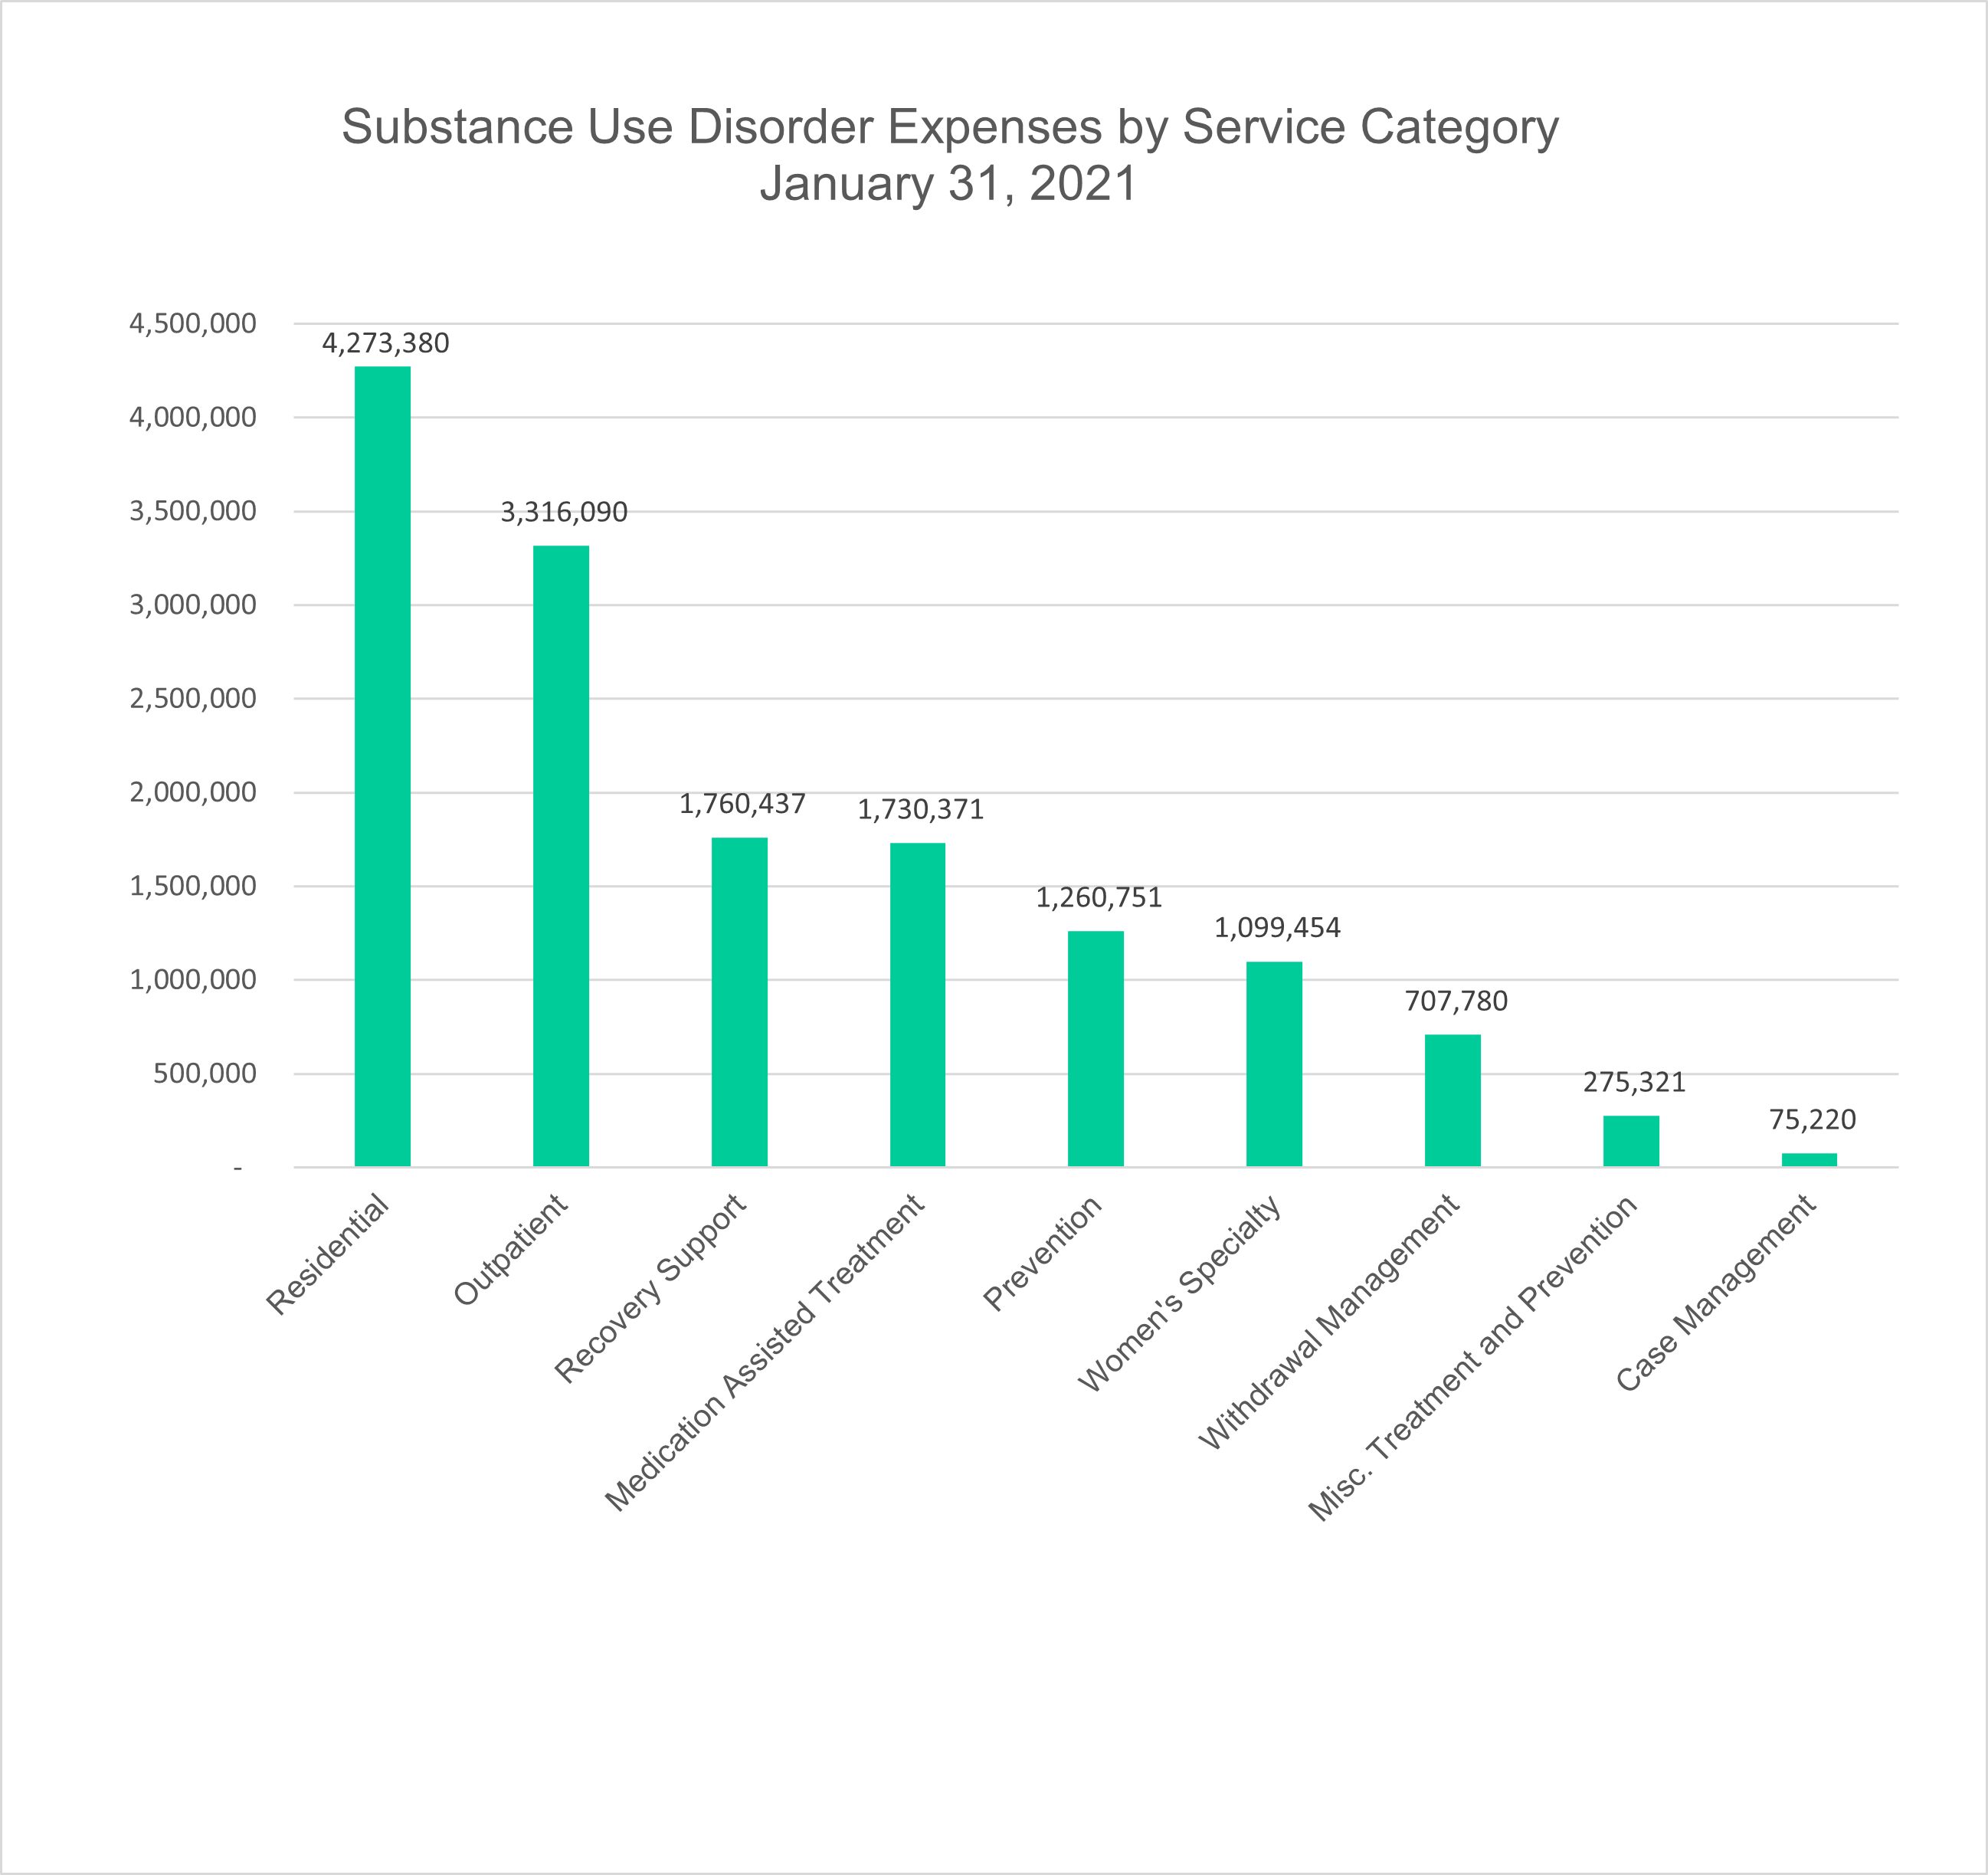 This graph represents funds spent for Substance Use Disorder (SUD) treatment and prevention services by category.